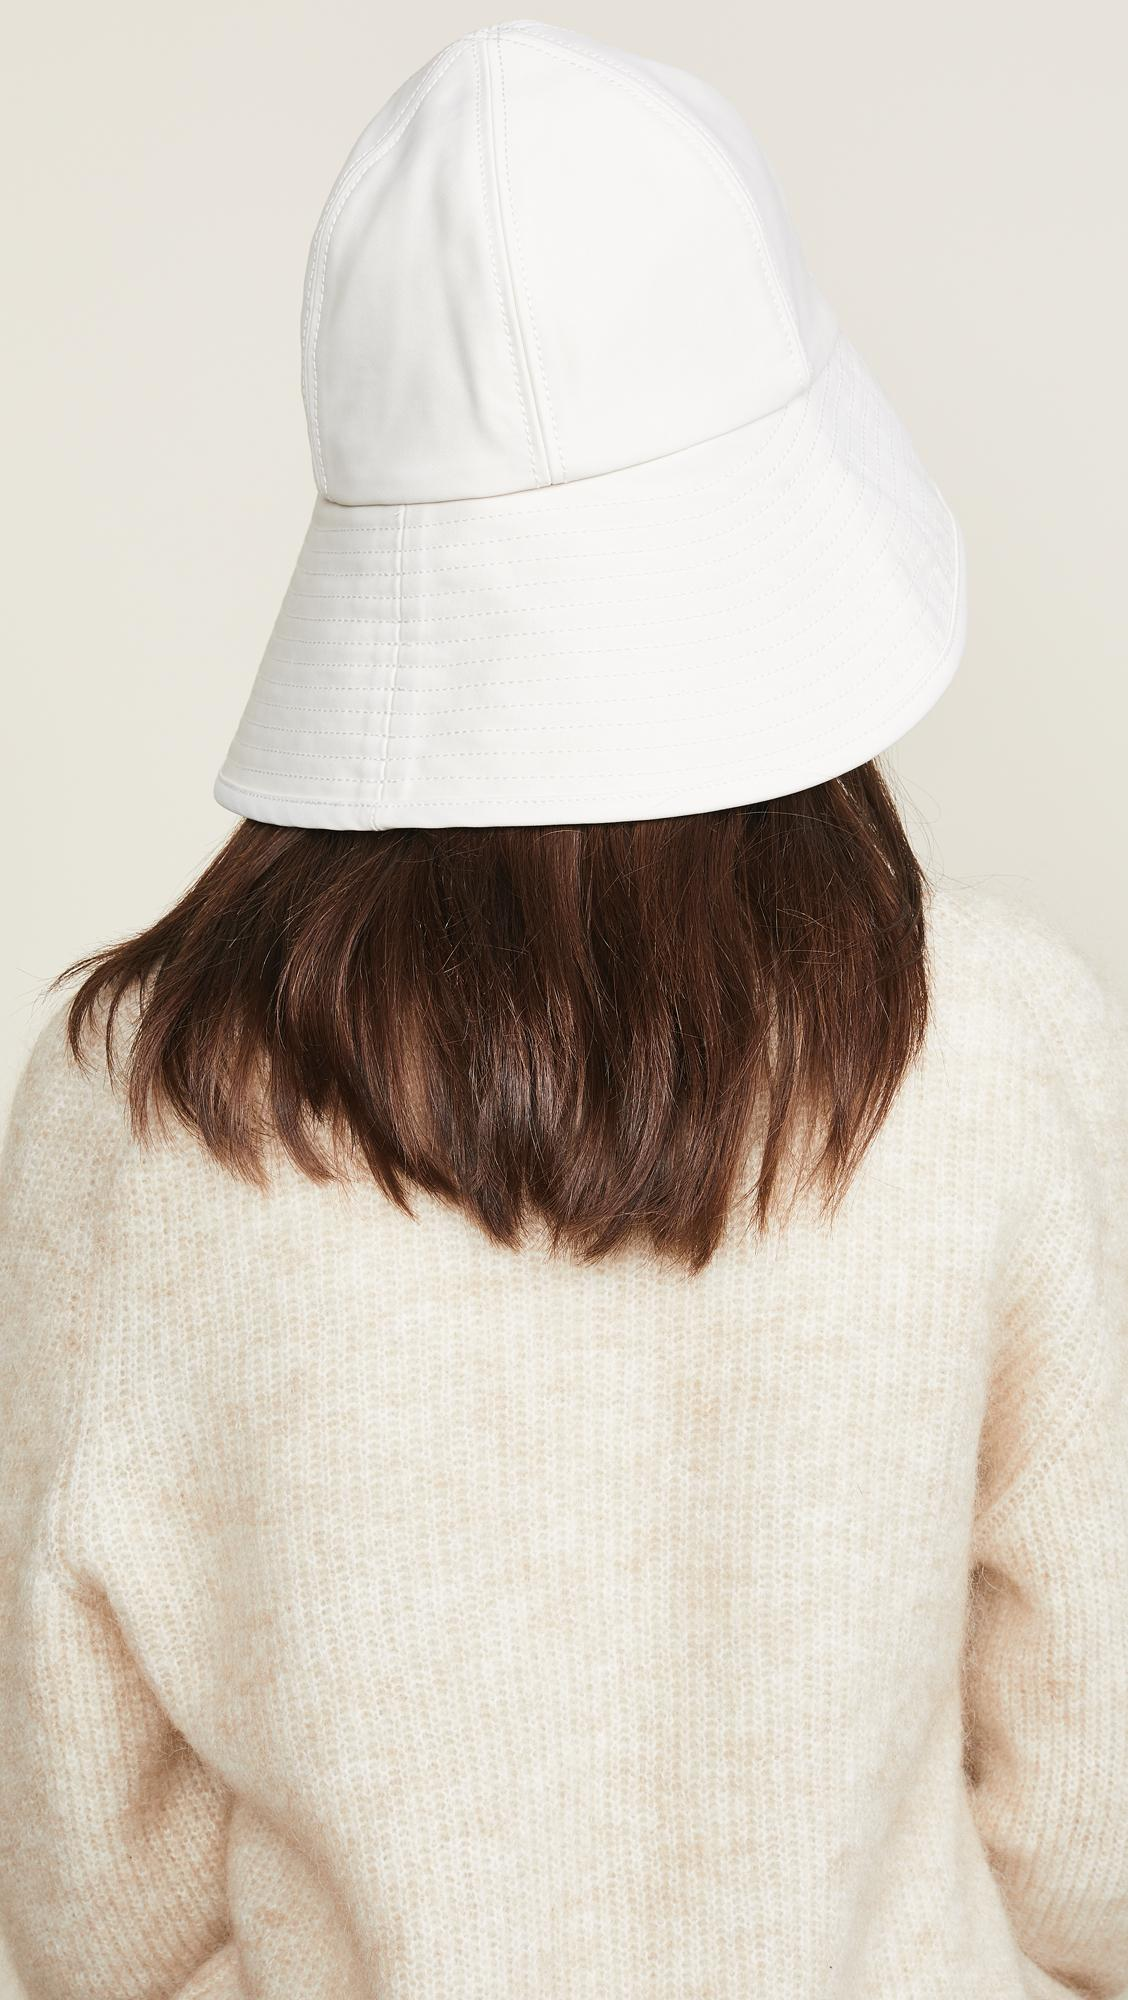 3f0a36813804f Lyst - 3.1 Phillip Lim Sateen Sporting Bucket Hat in White